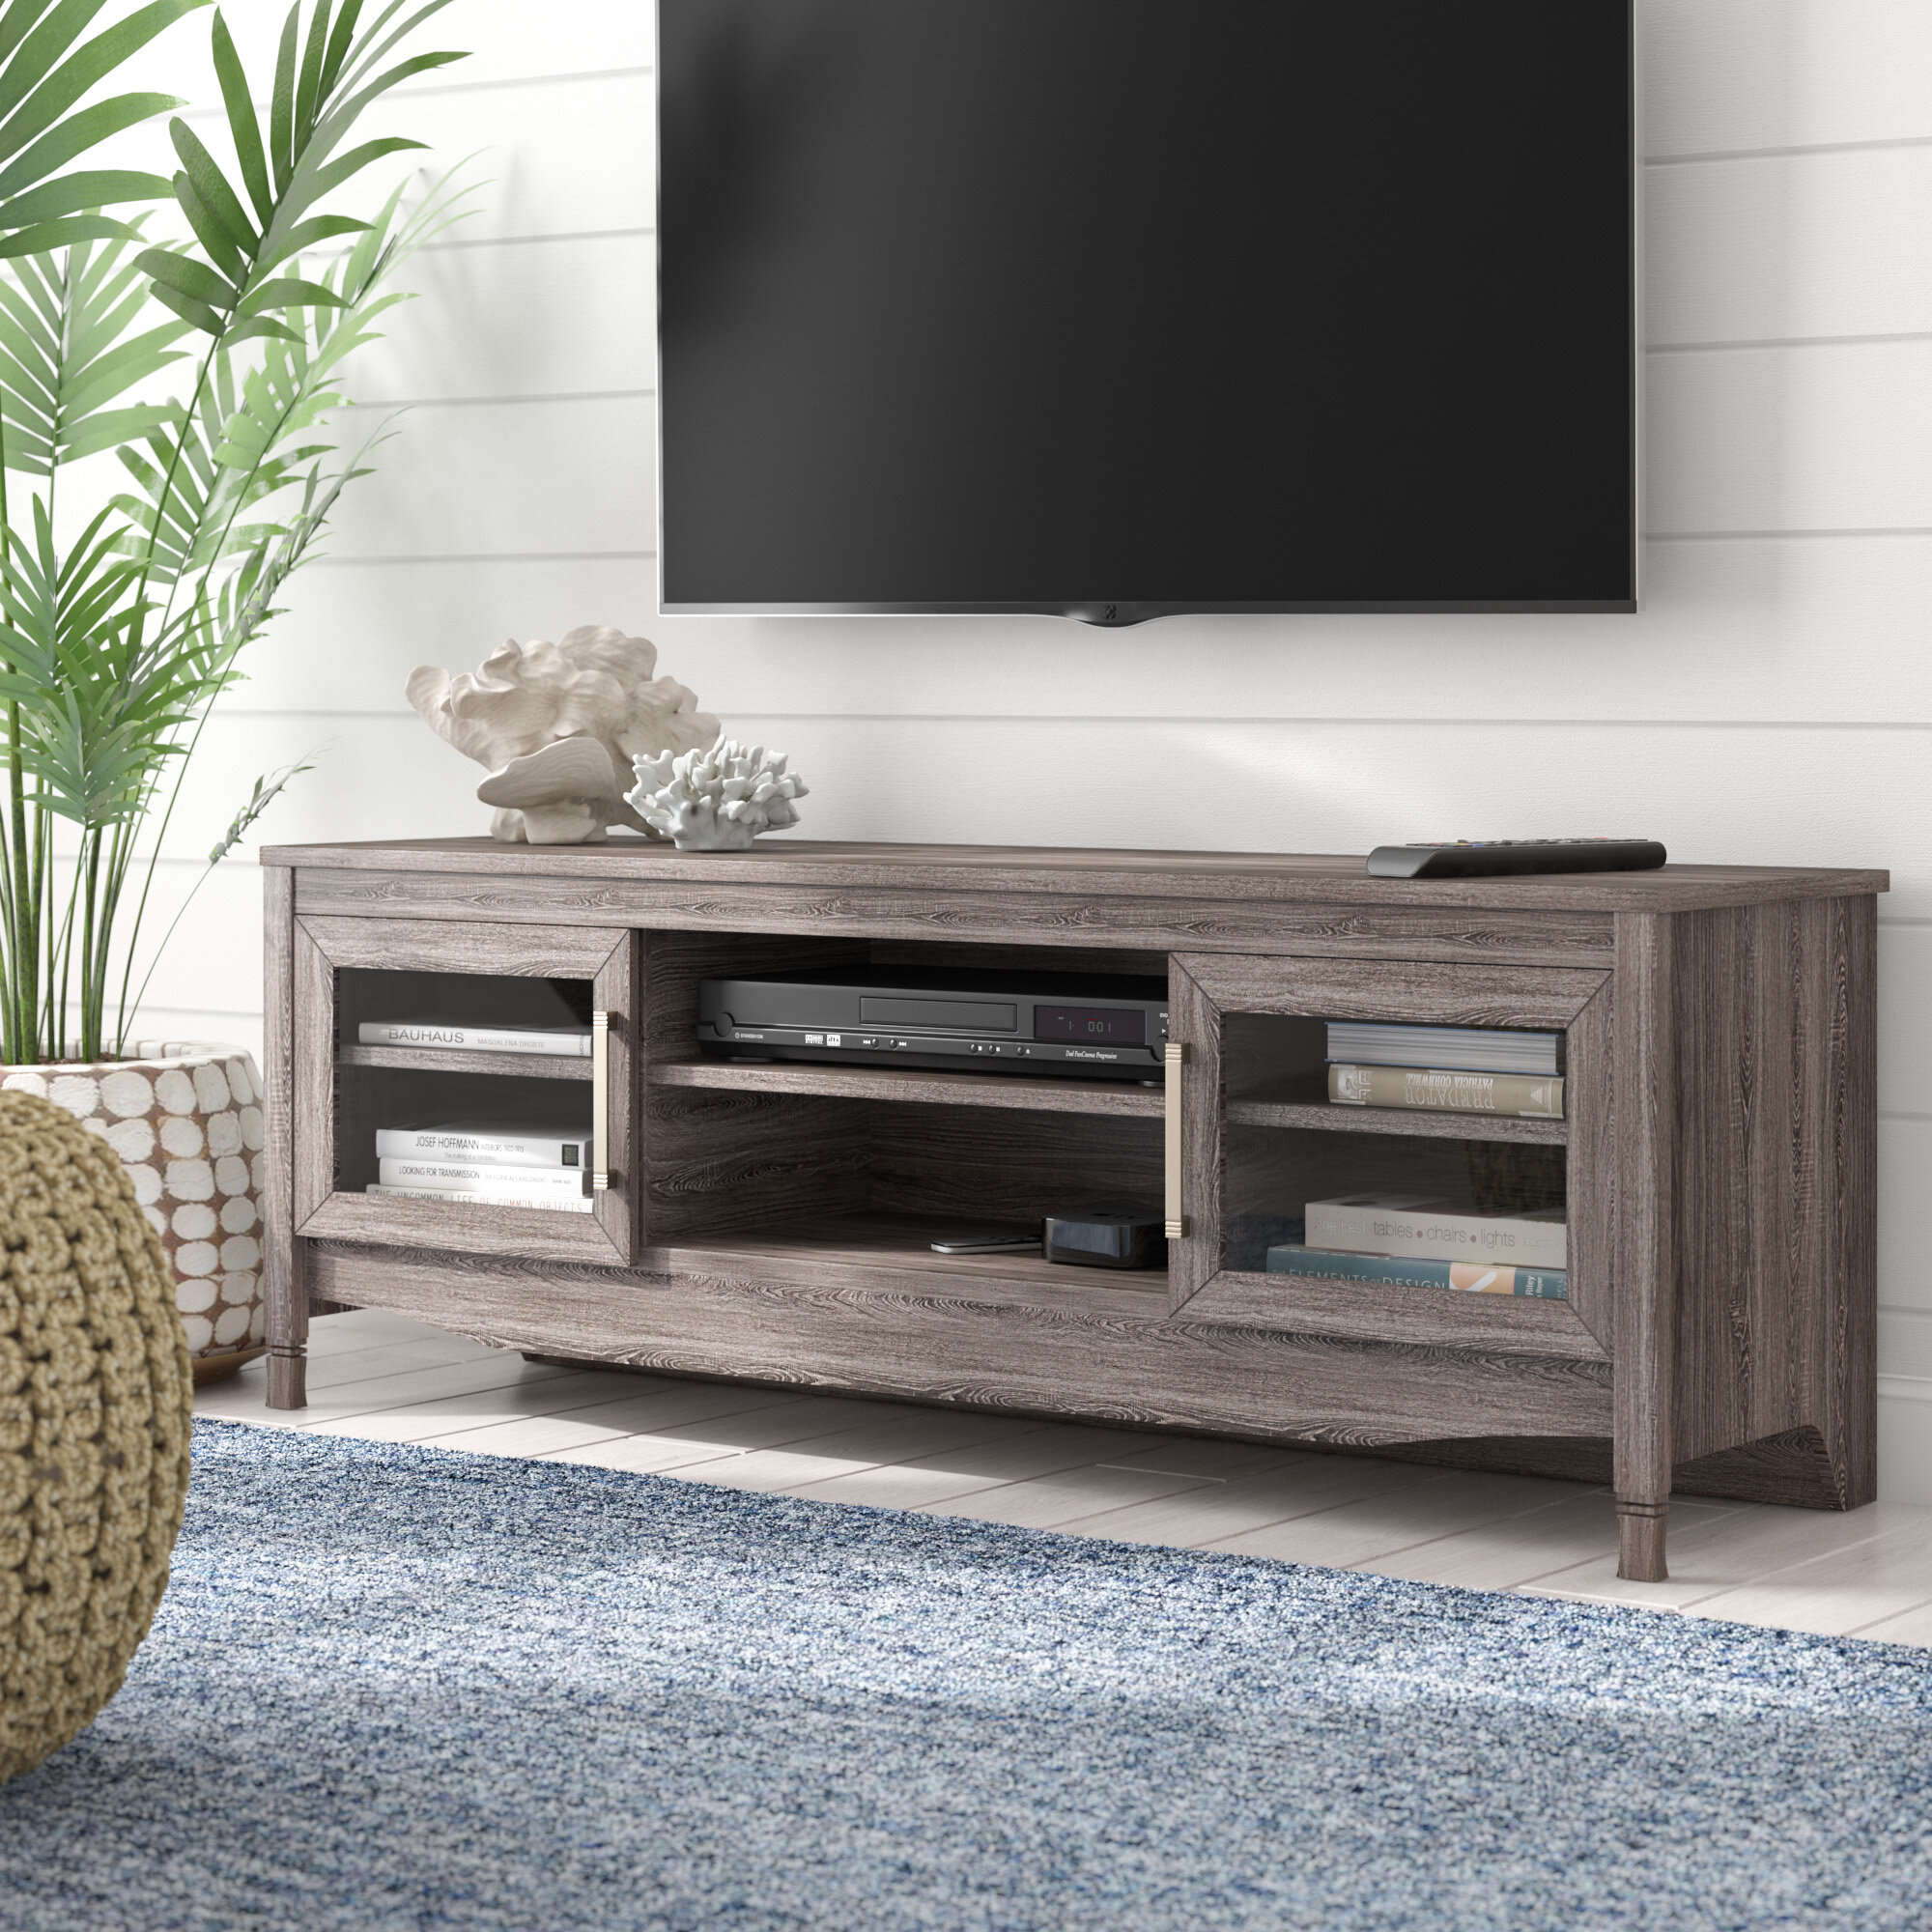 hot sale online 87204 29bf9 Buxton TV Stand for TVs up to 50